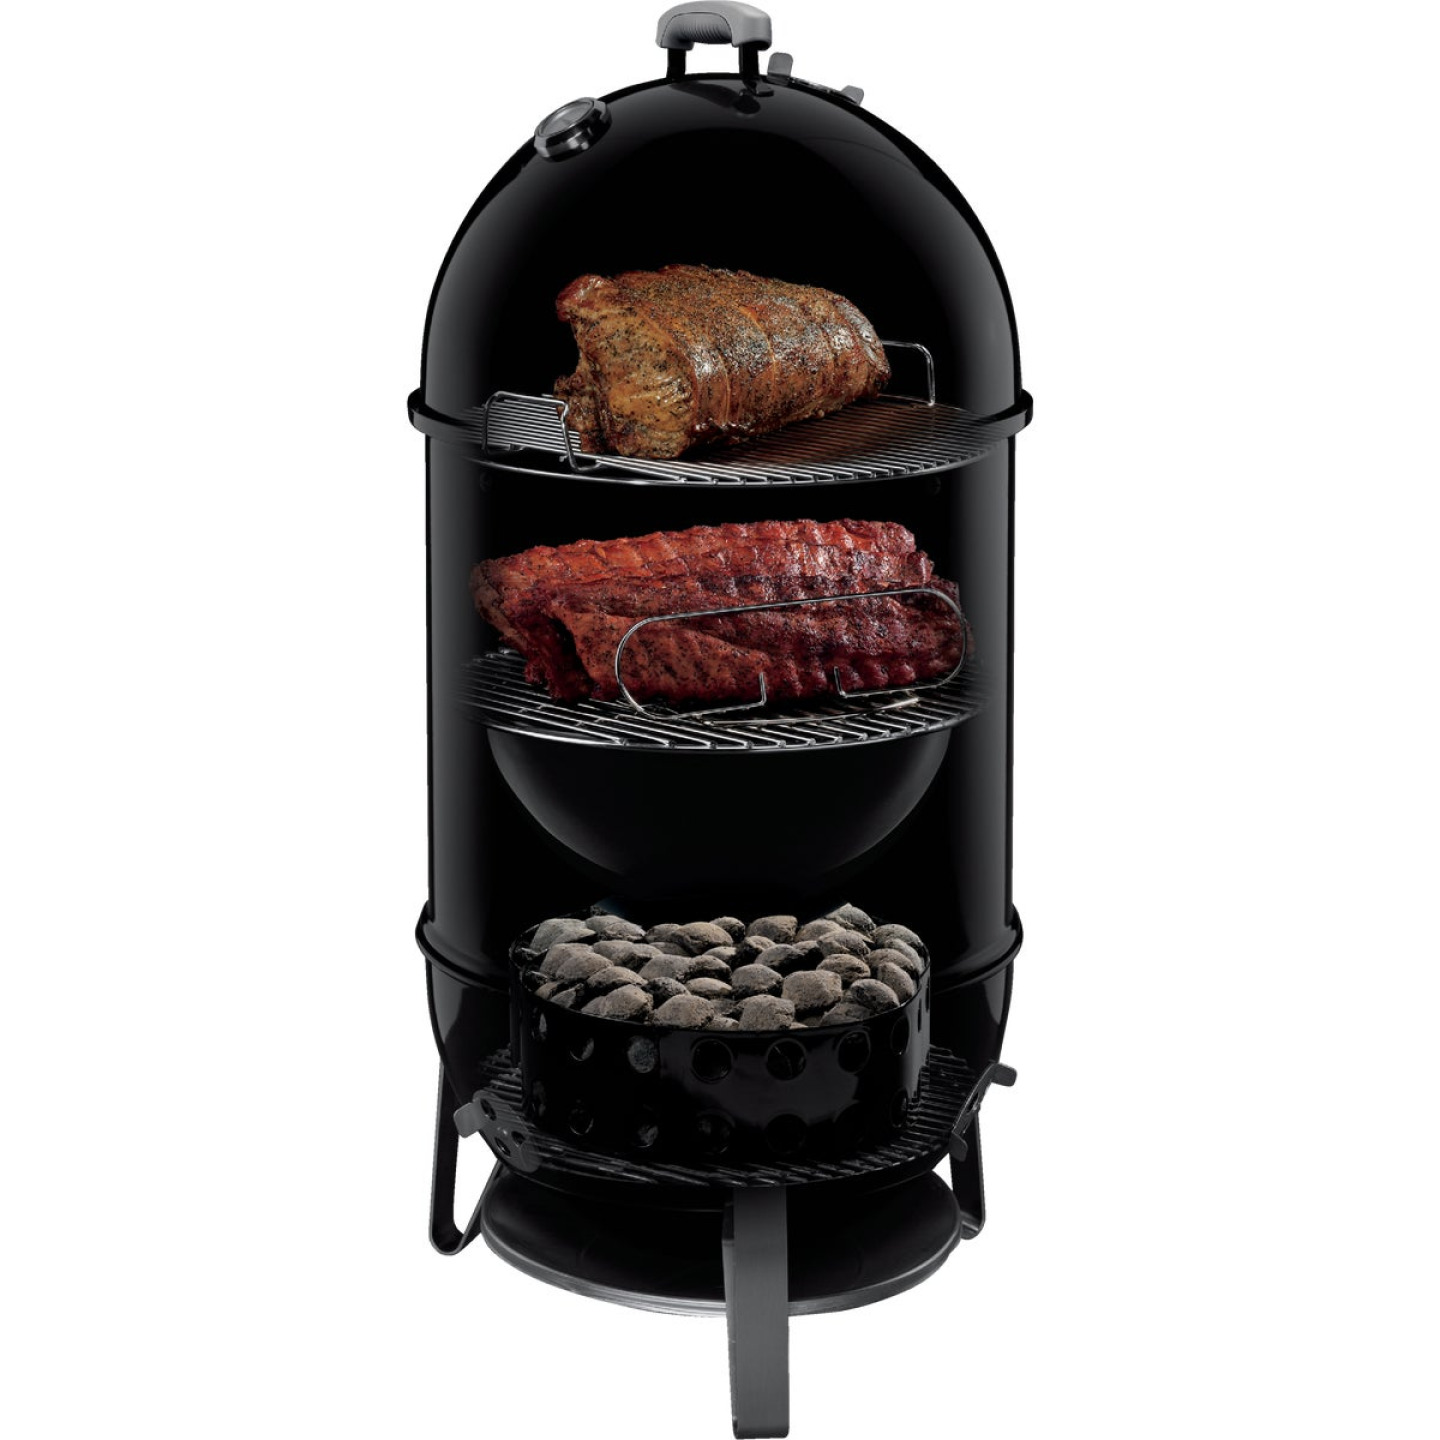 Weber Smokey Mountain Cooker 18 In. Dia. 481 Sq. In. Vertical Charcoal Smoker Image 9